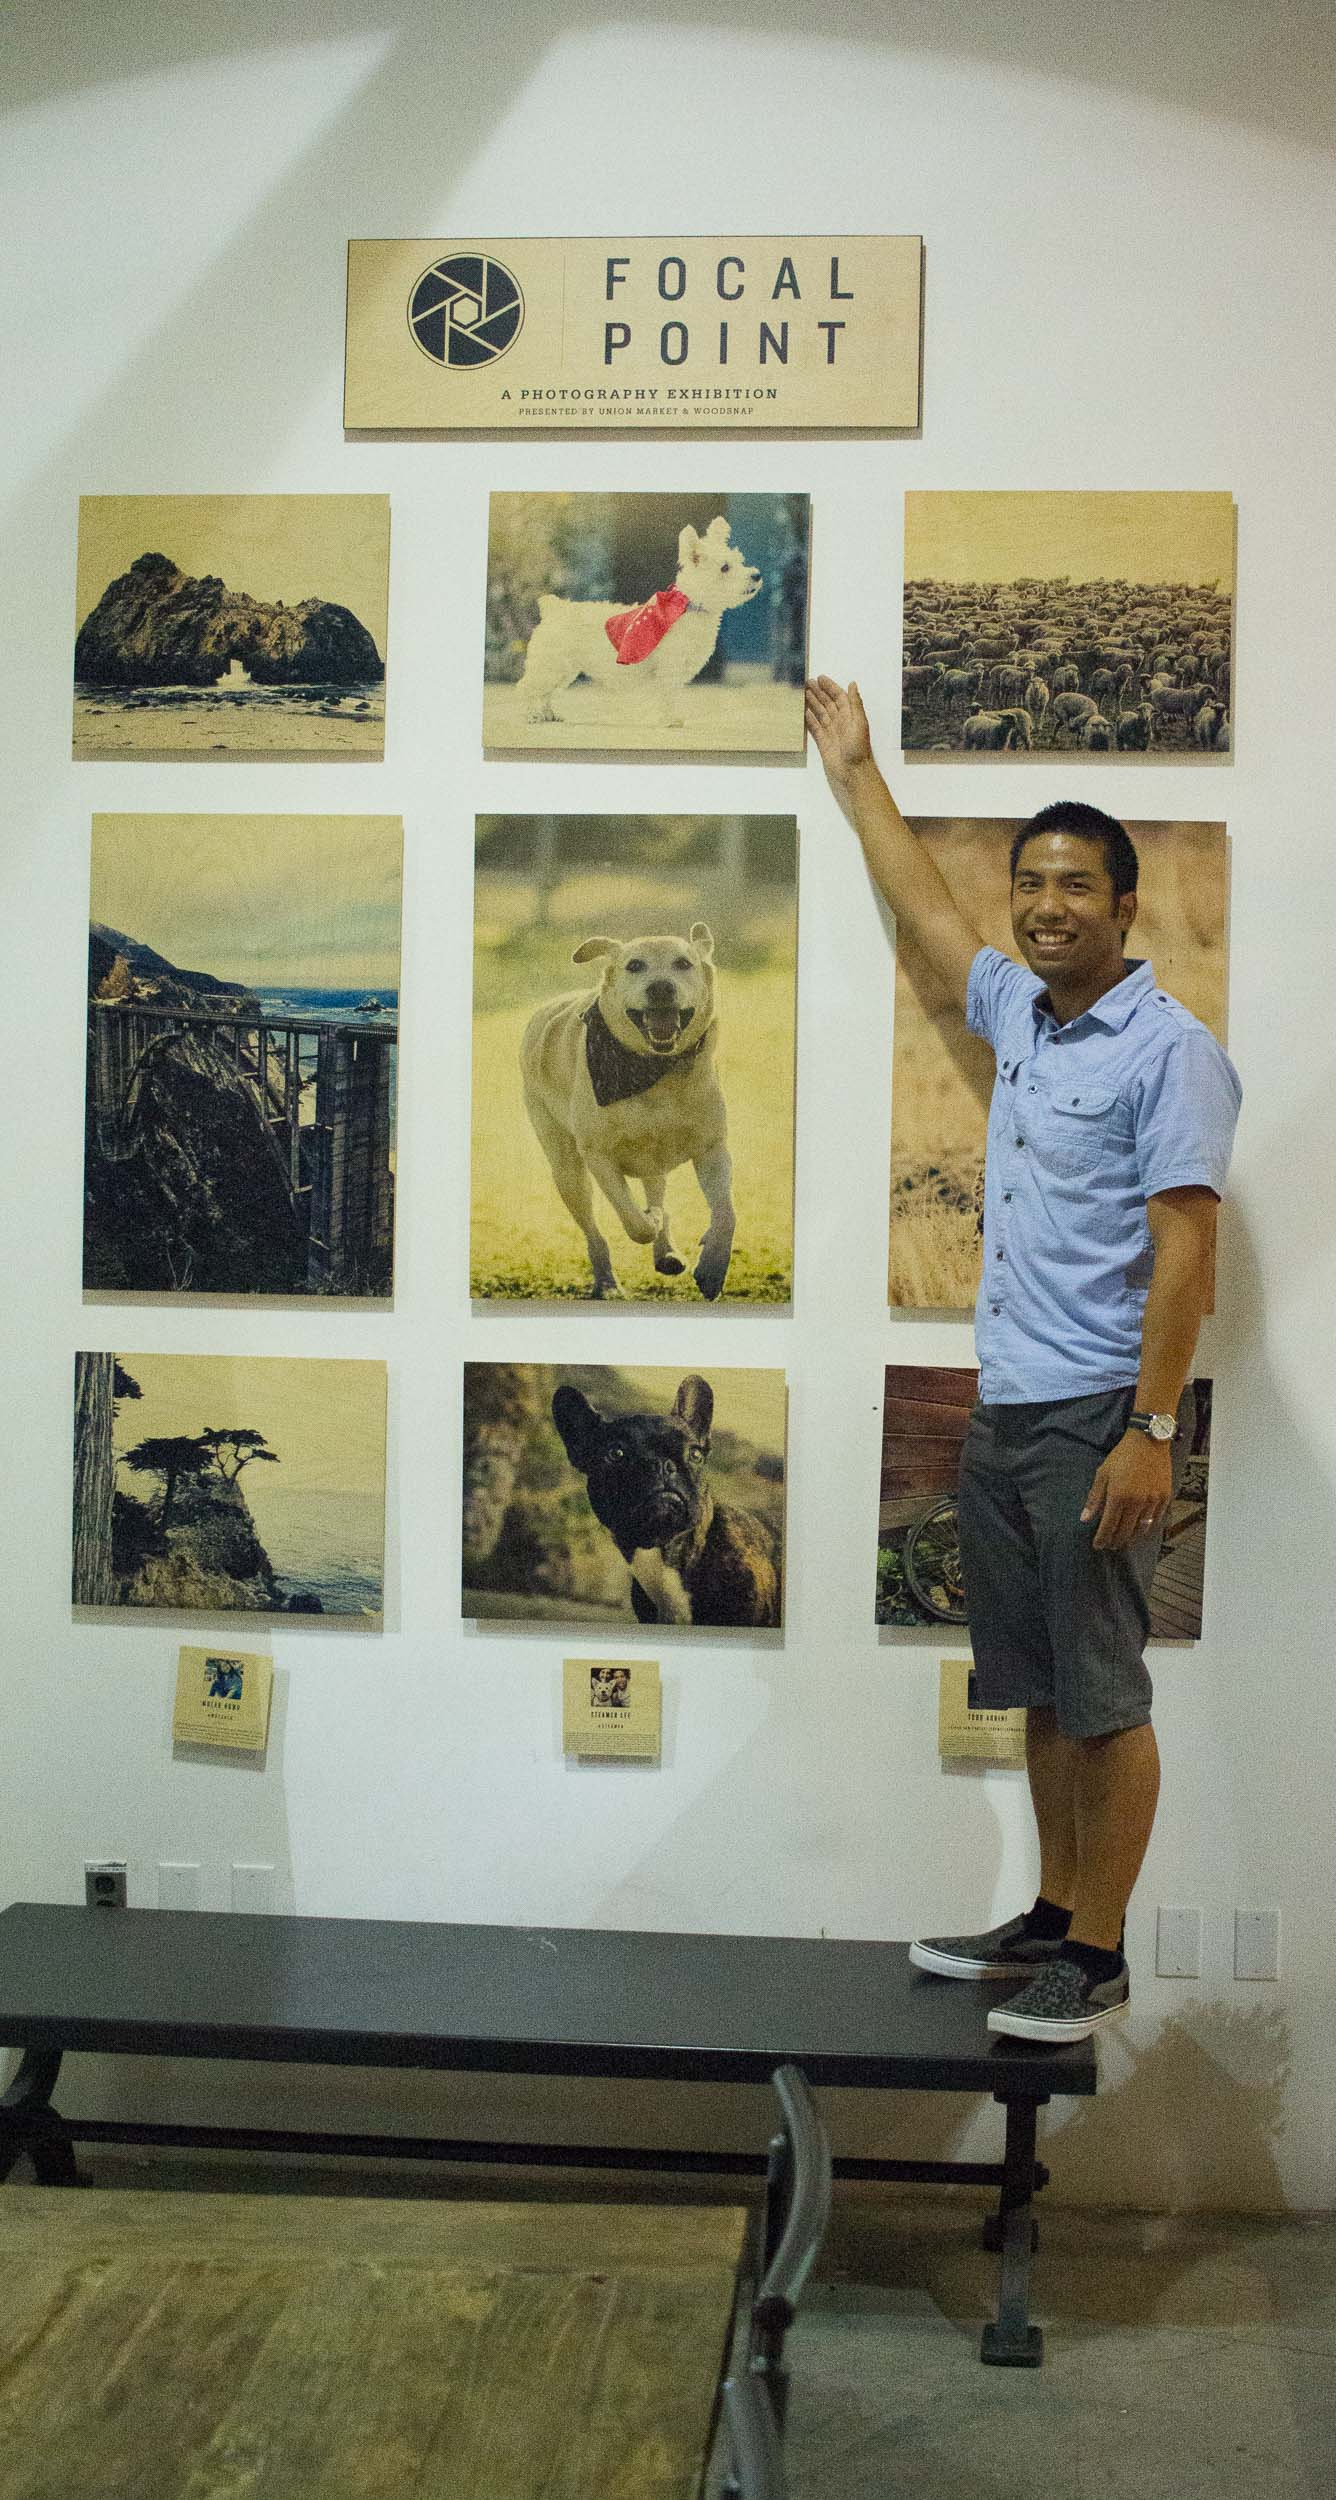 Steamer Lee Dog Photography - Focal Point Mission Viejo WoodSnap Exhibit - 6.jpg